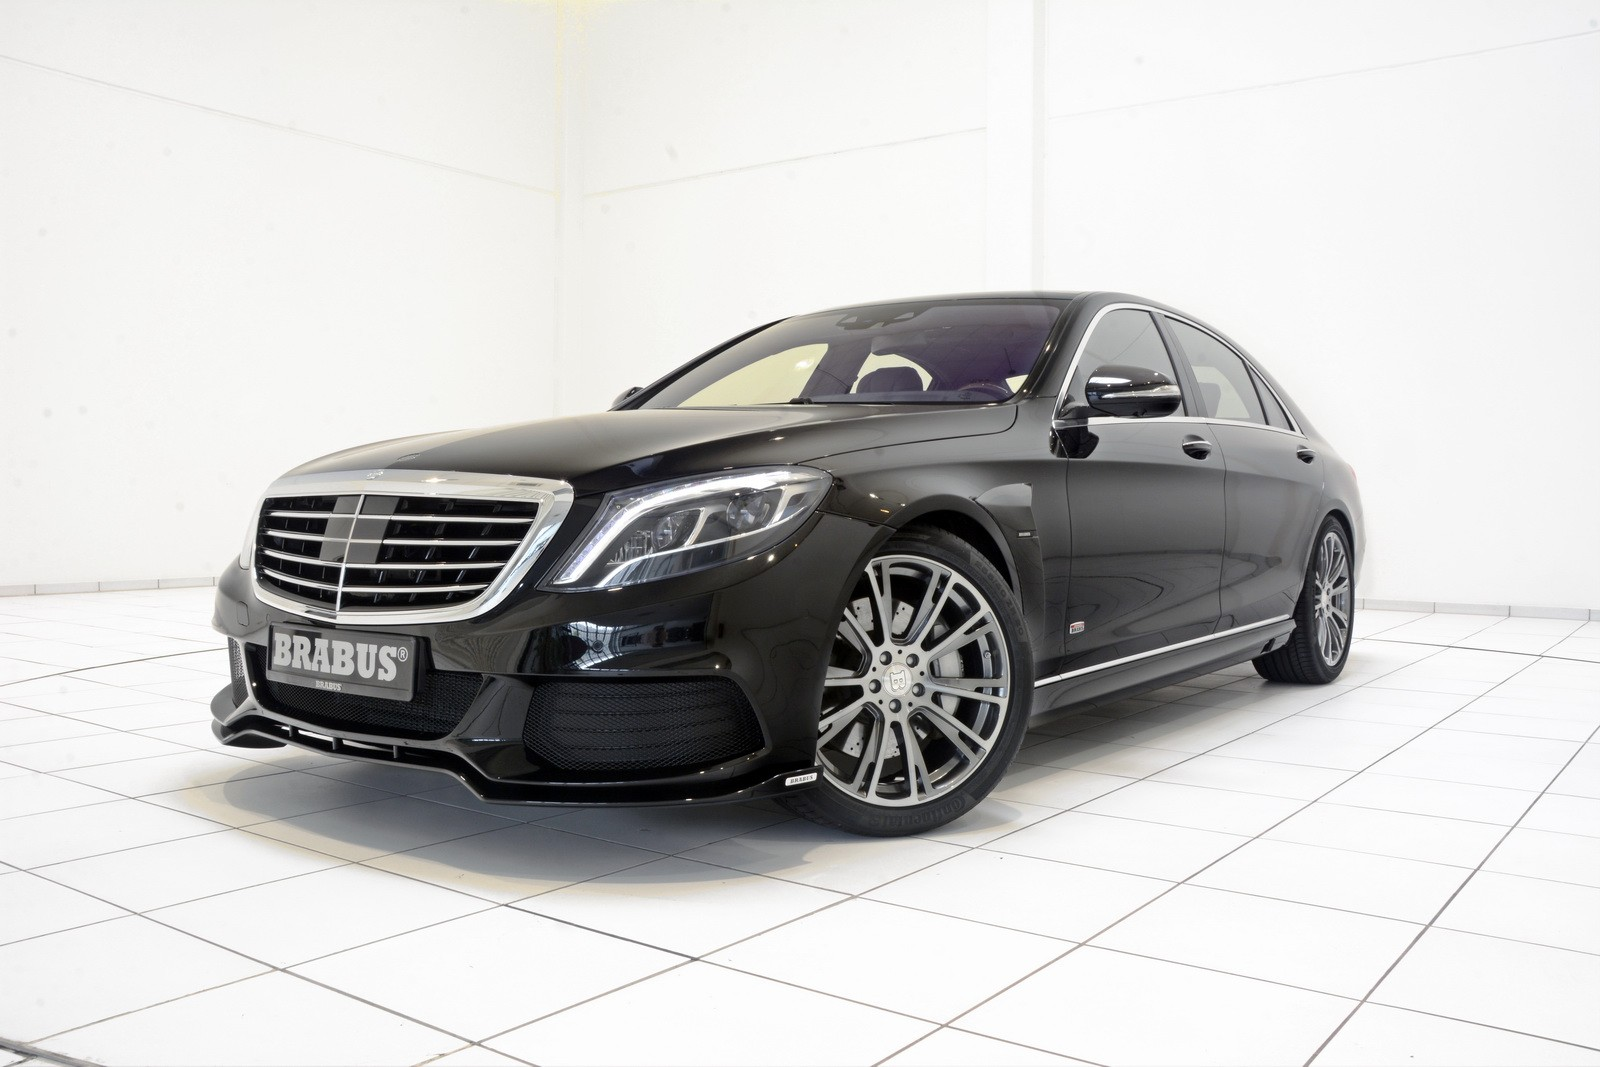 brabus powerxtra b50 hybrid is a mercedes benz s500 plug. Black Bedroom Furniture Sets. Home Design Ideas